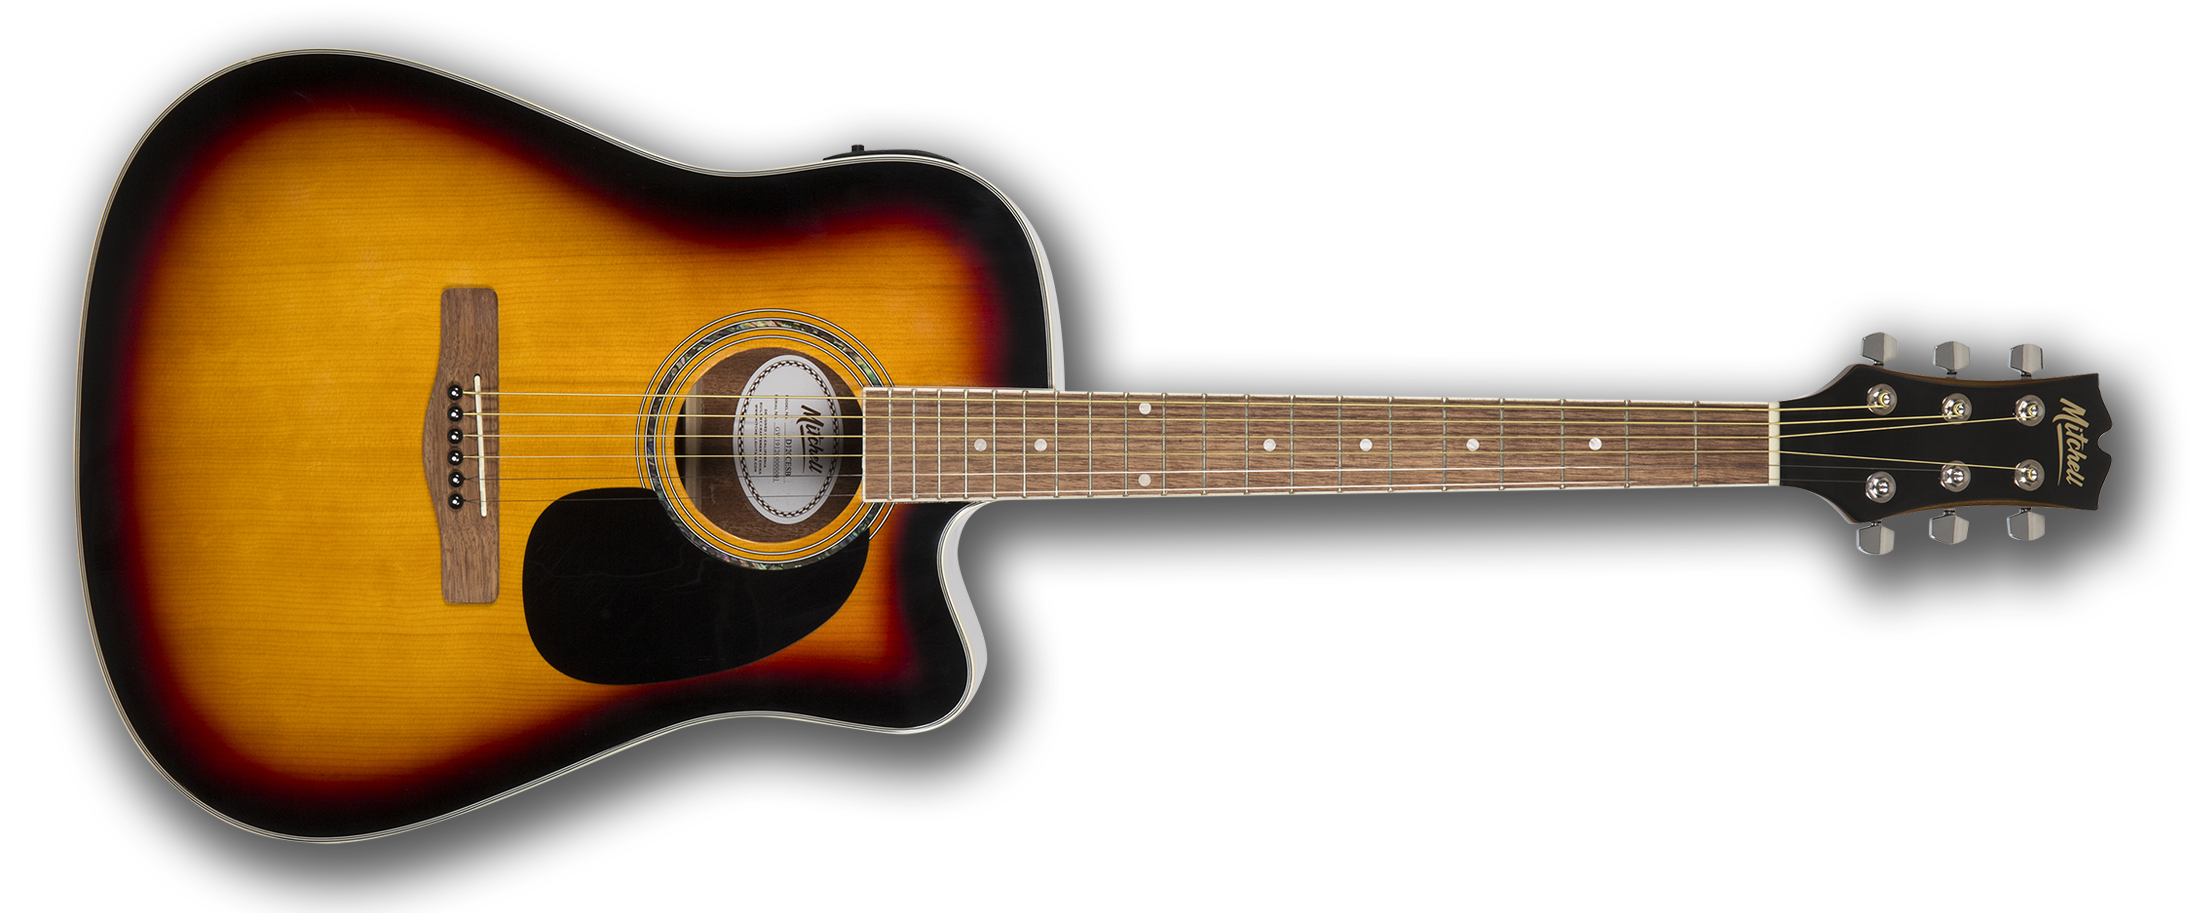 Mitchell D120CESB Dreadnought Acoustic-Electric Cutaway Guitar